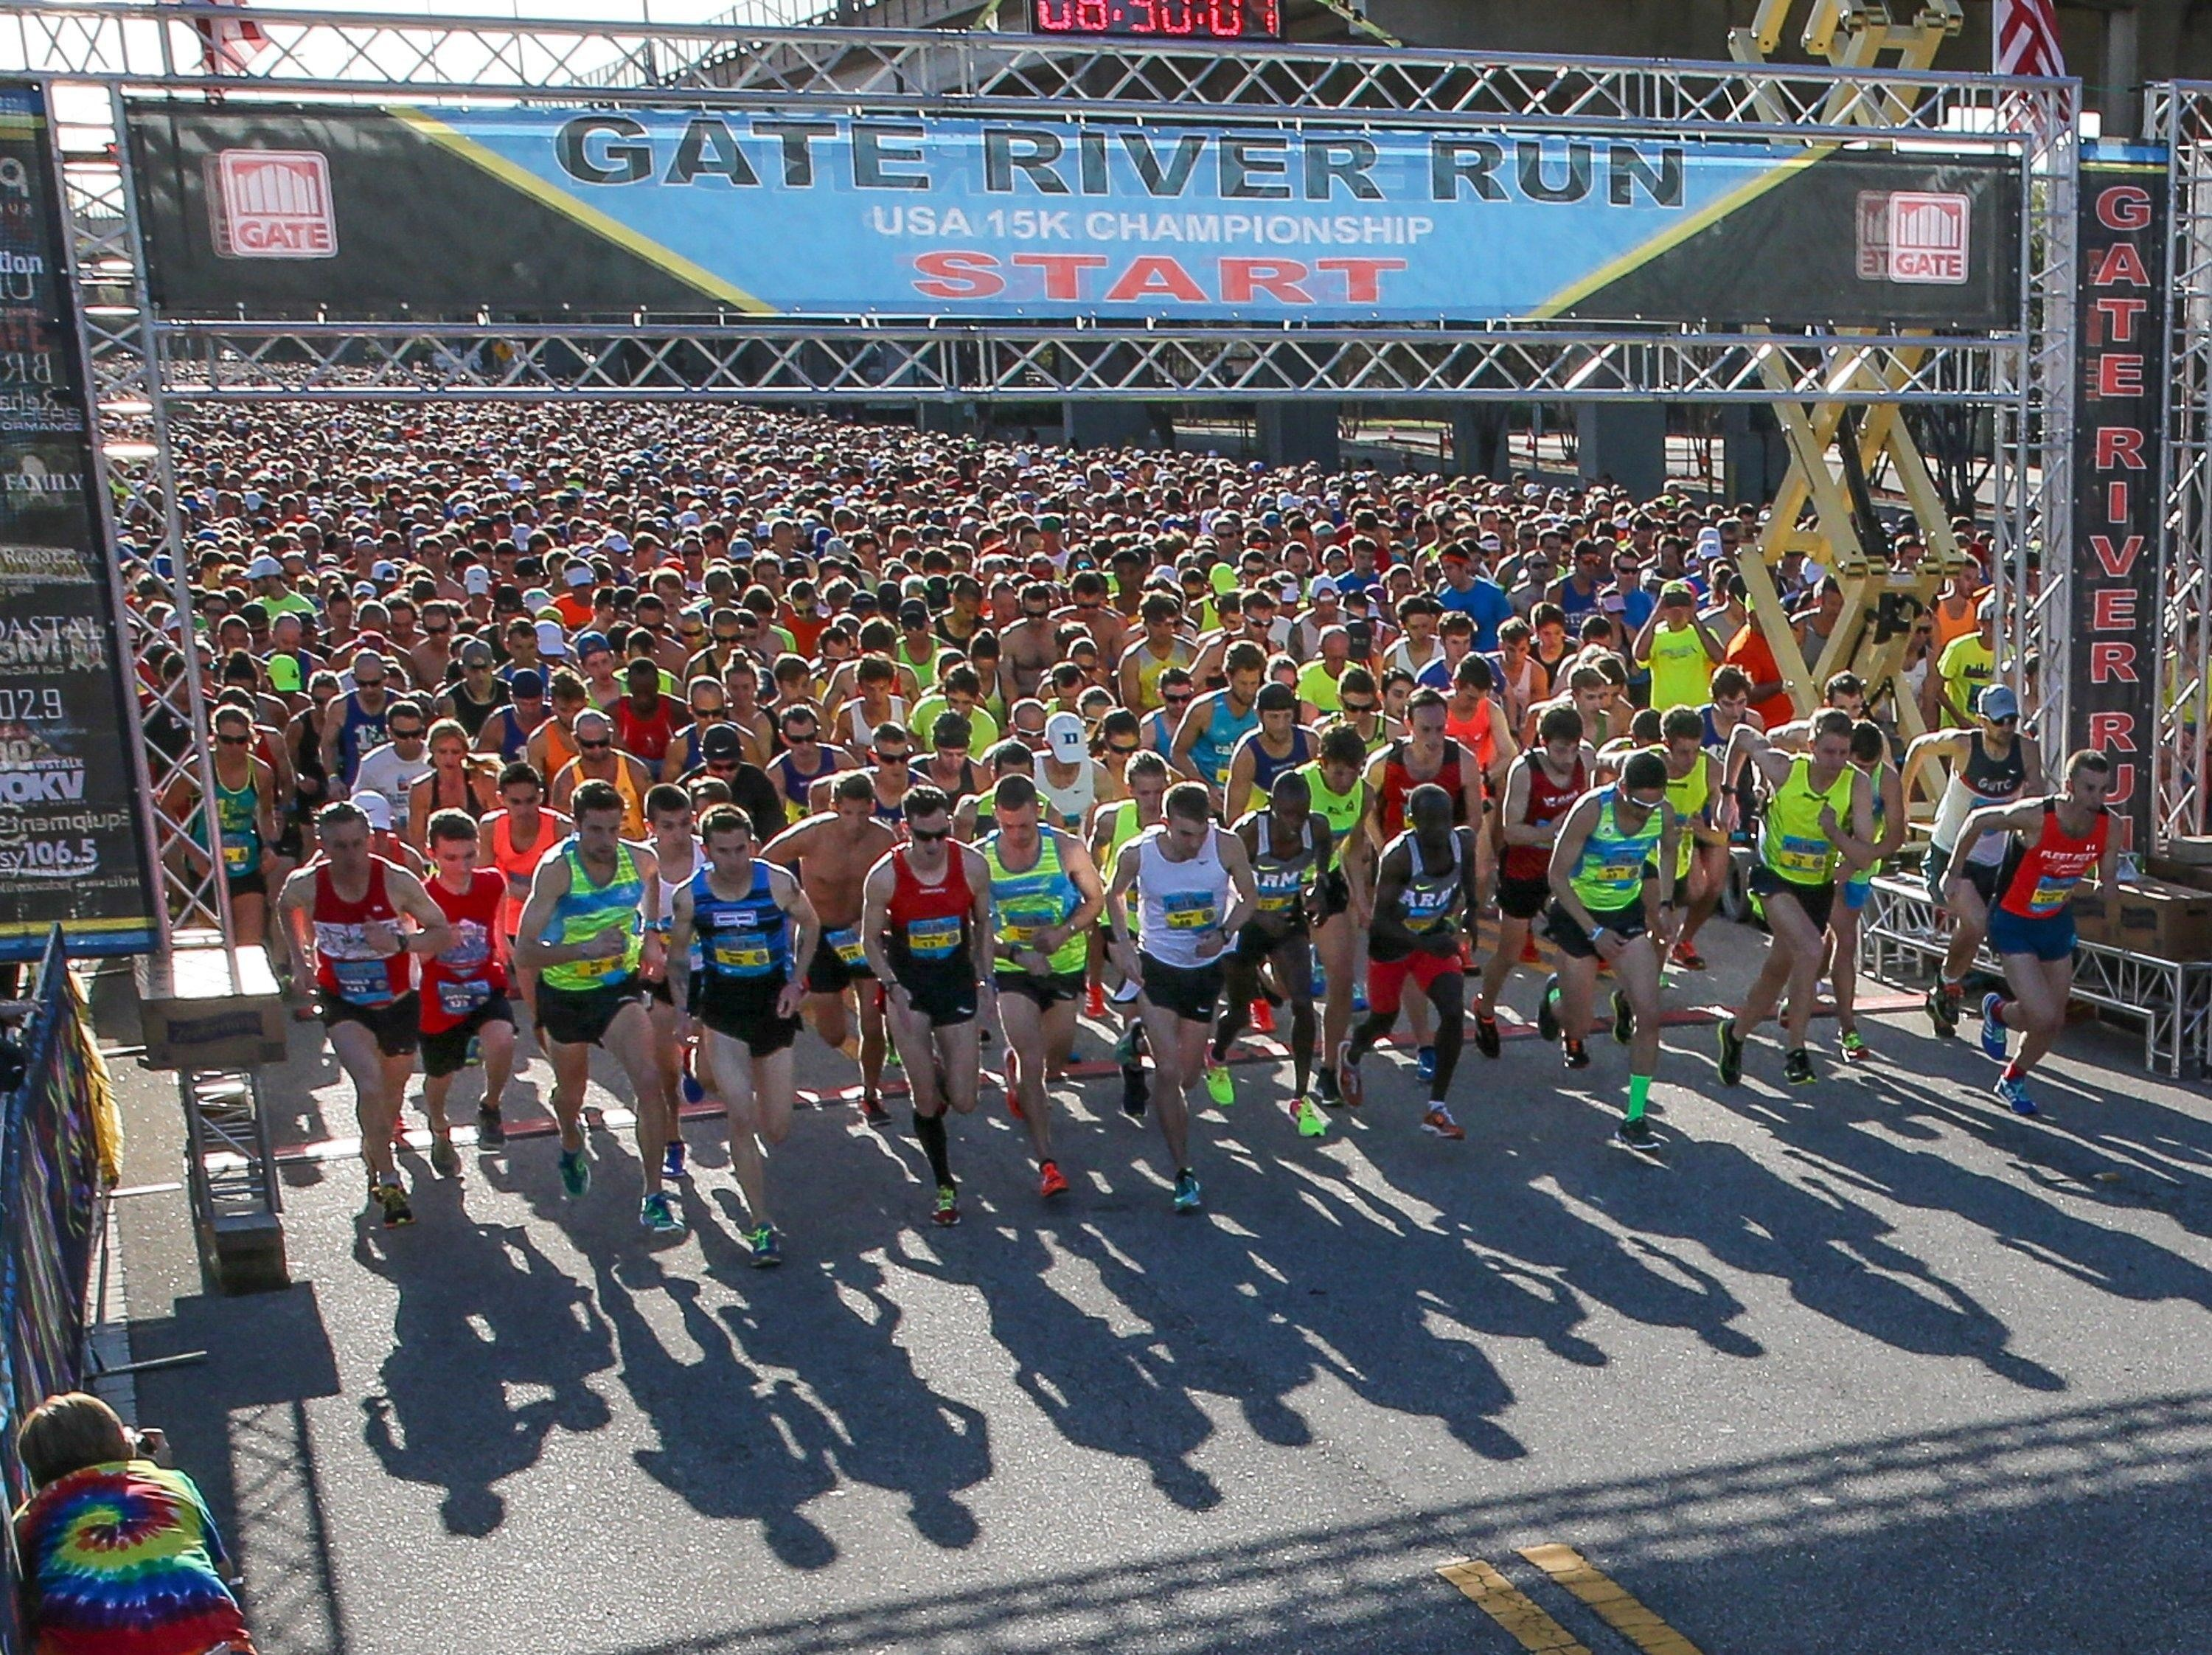 There is a group of 33 runners called the Streakers who have finished every Gate River Run